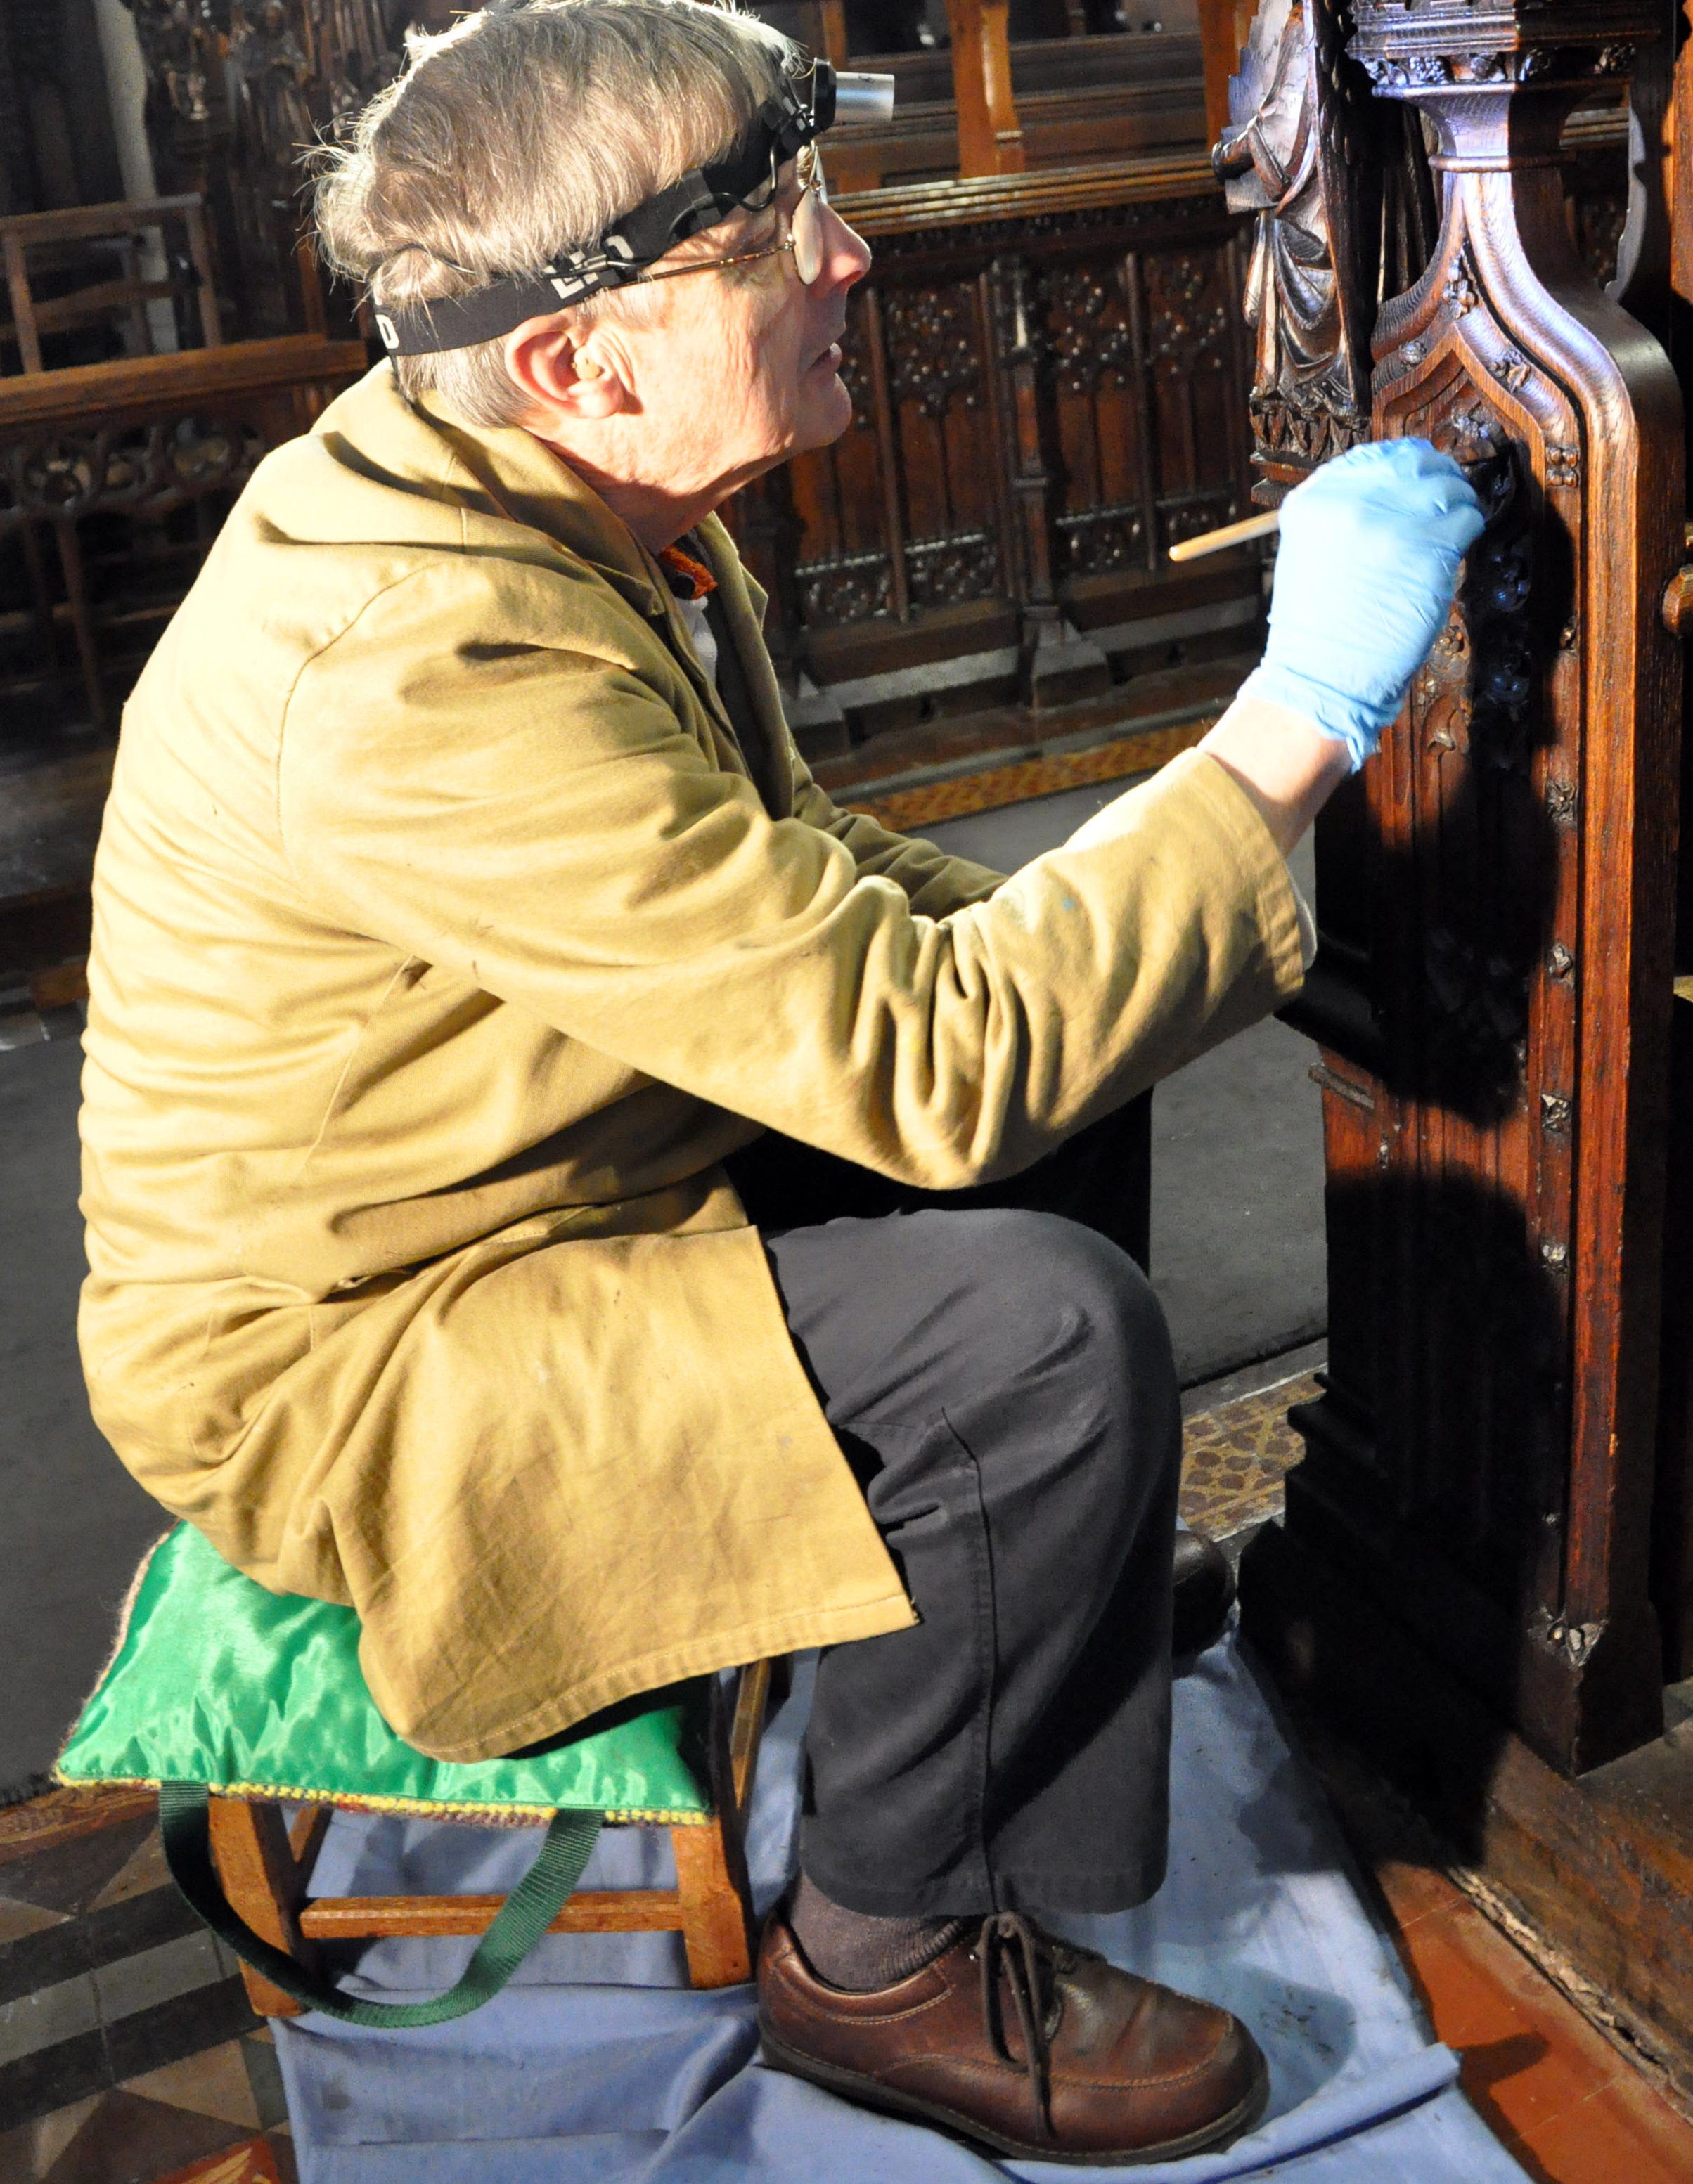 Our beeswax furniture polish is being used to restore 19th century oak choir stalls at St Mary-le-Tower Church in Ipswich